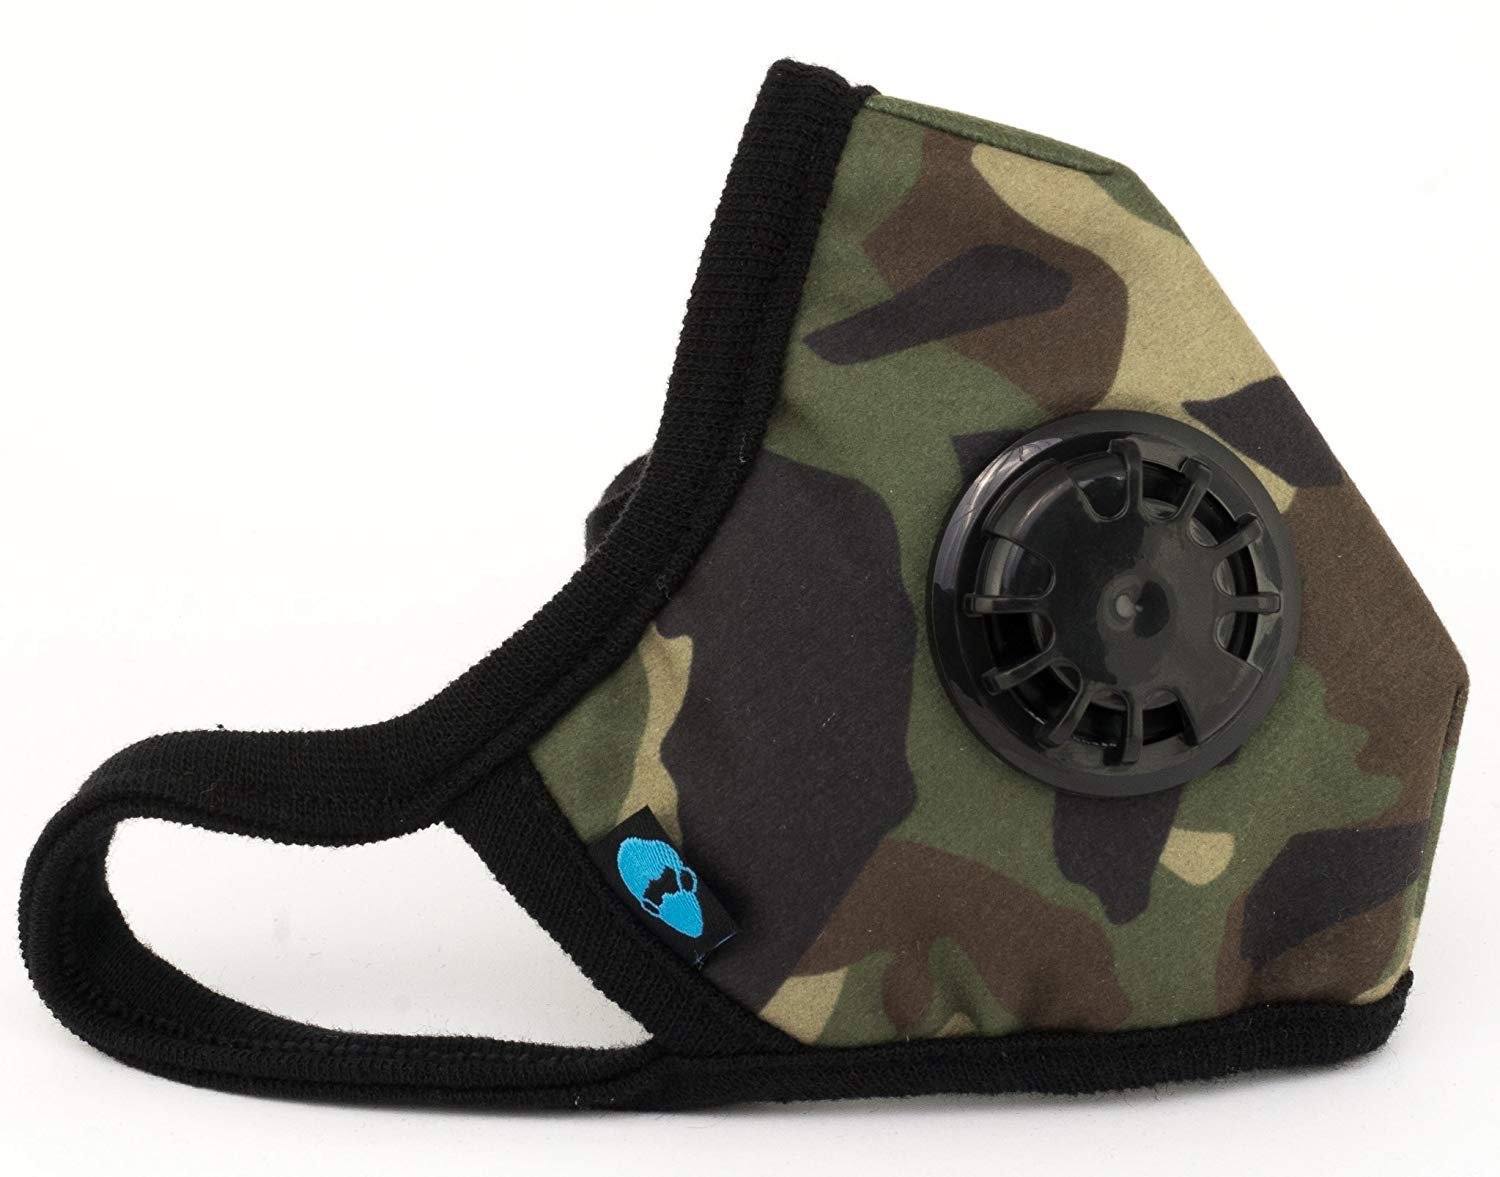 Cambridge Mask Co Pro Anti Pollution N99 Washable Military Grade Respirator with Adjustable Straps - General M Pro by Cambridge Mask Co